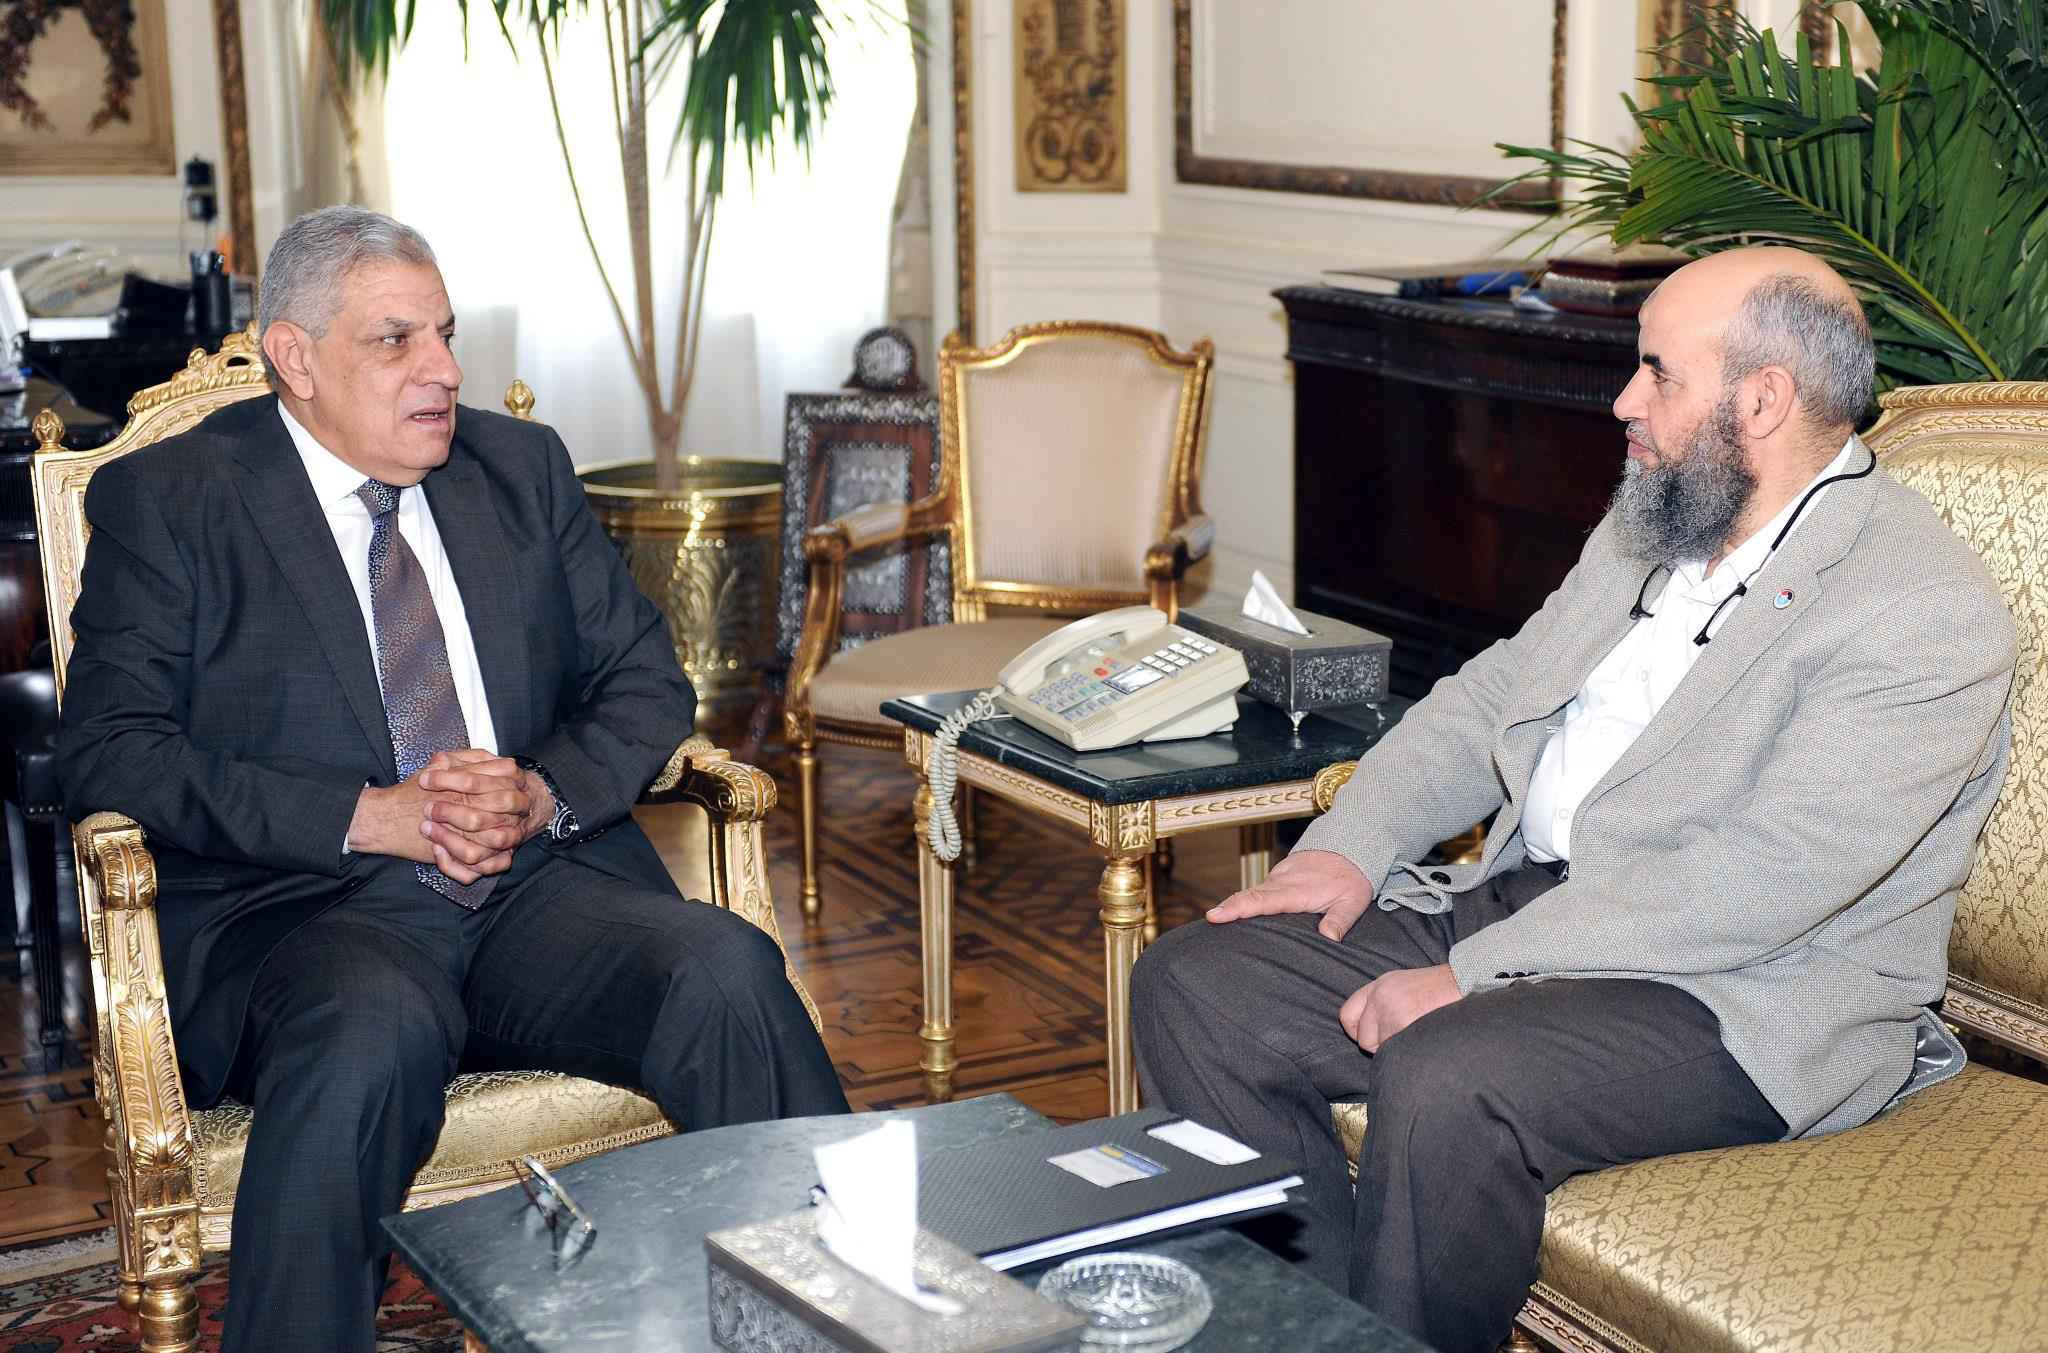 Prime Minister Ibrahim Mehleb (left) meets with Al-Nour Party Chairman Younis Makhyoun (right) on Wednesday. (Photo Handout from the Cabinet spokesperson)